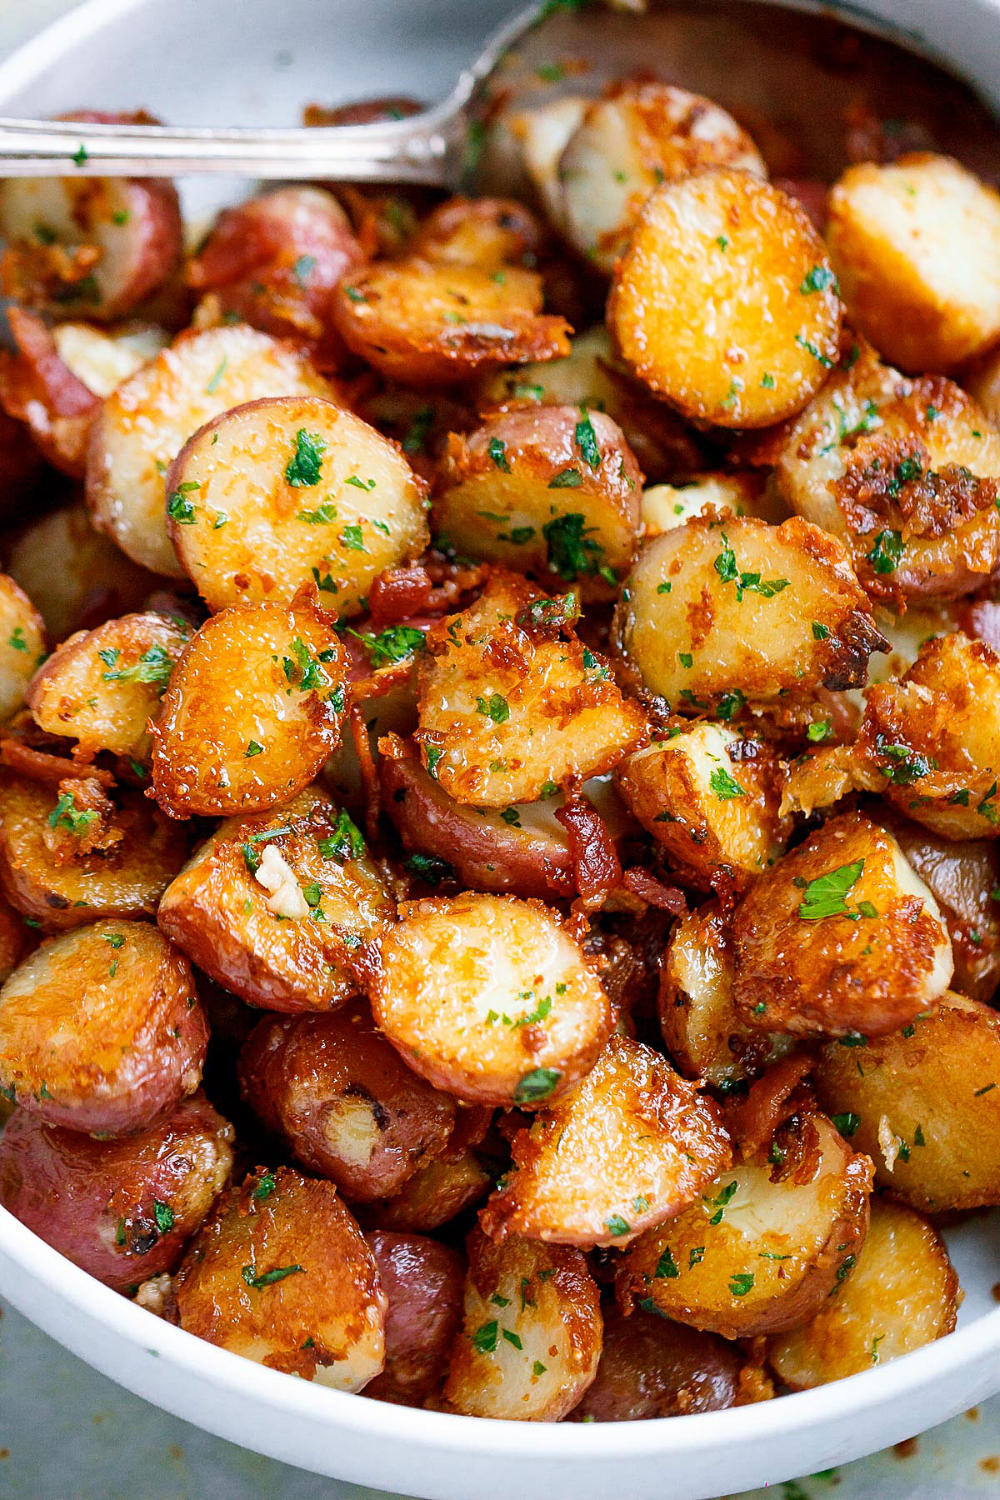 Photo of Roasted Garlic Butter Parmesan Potatoes